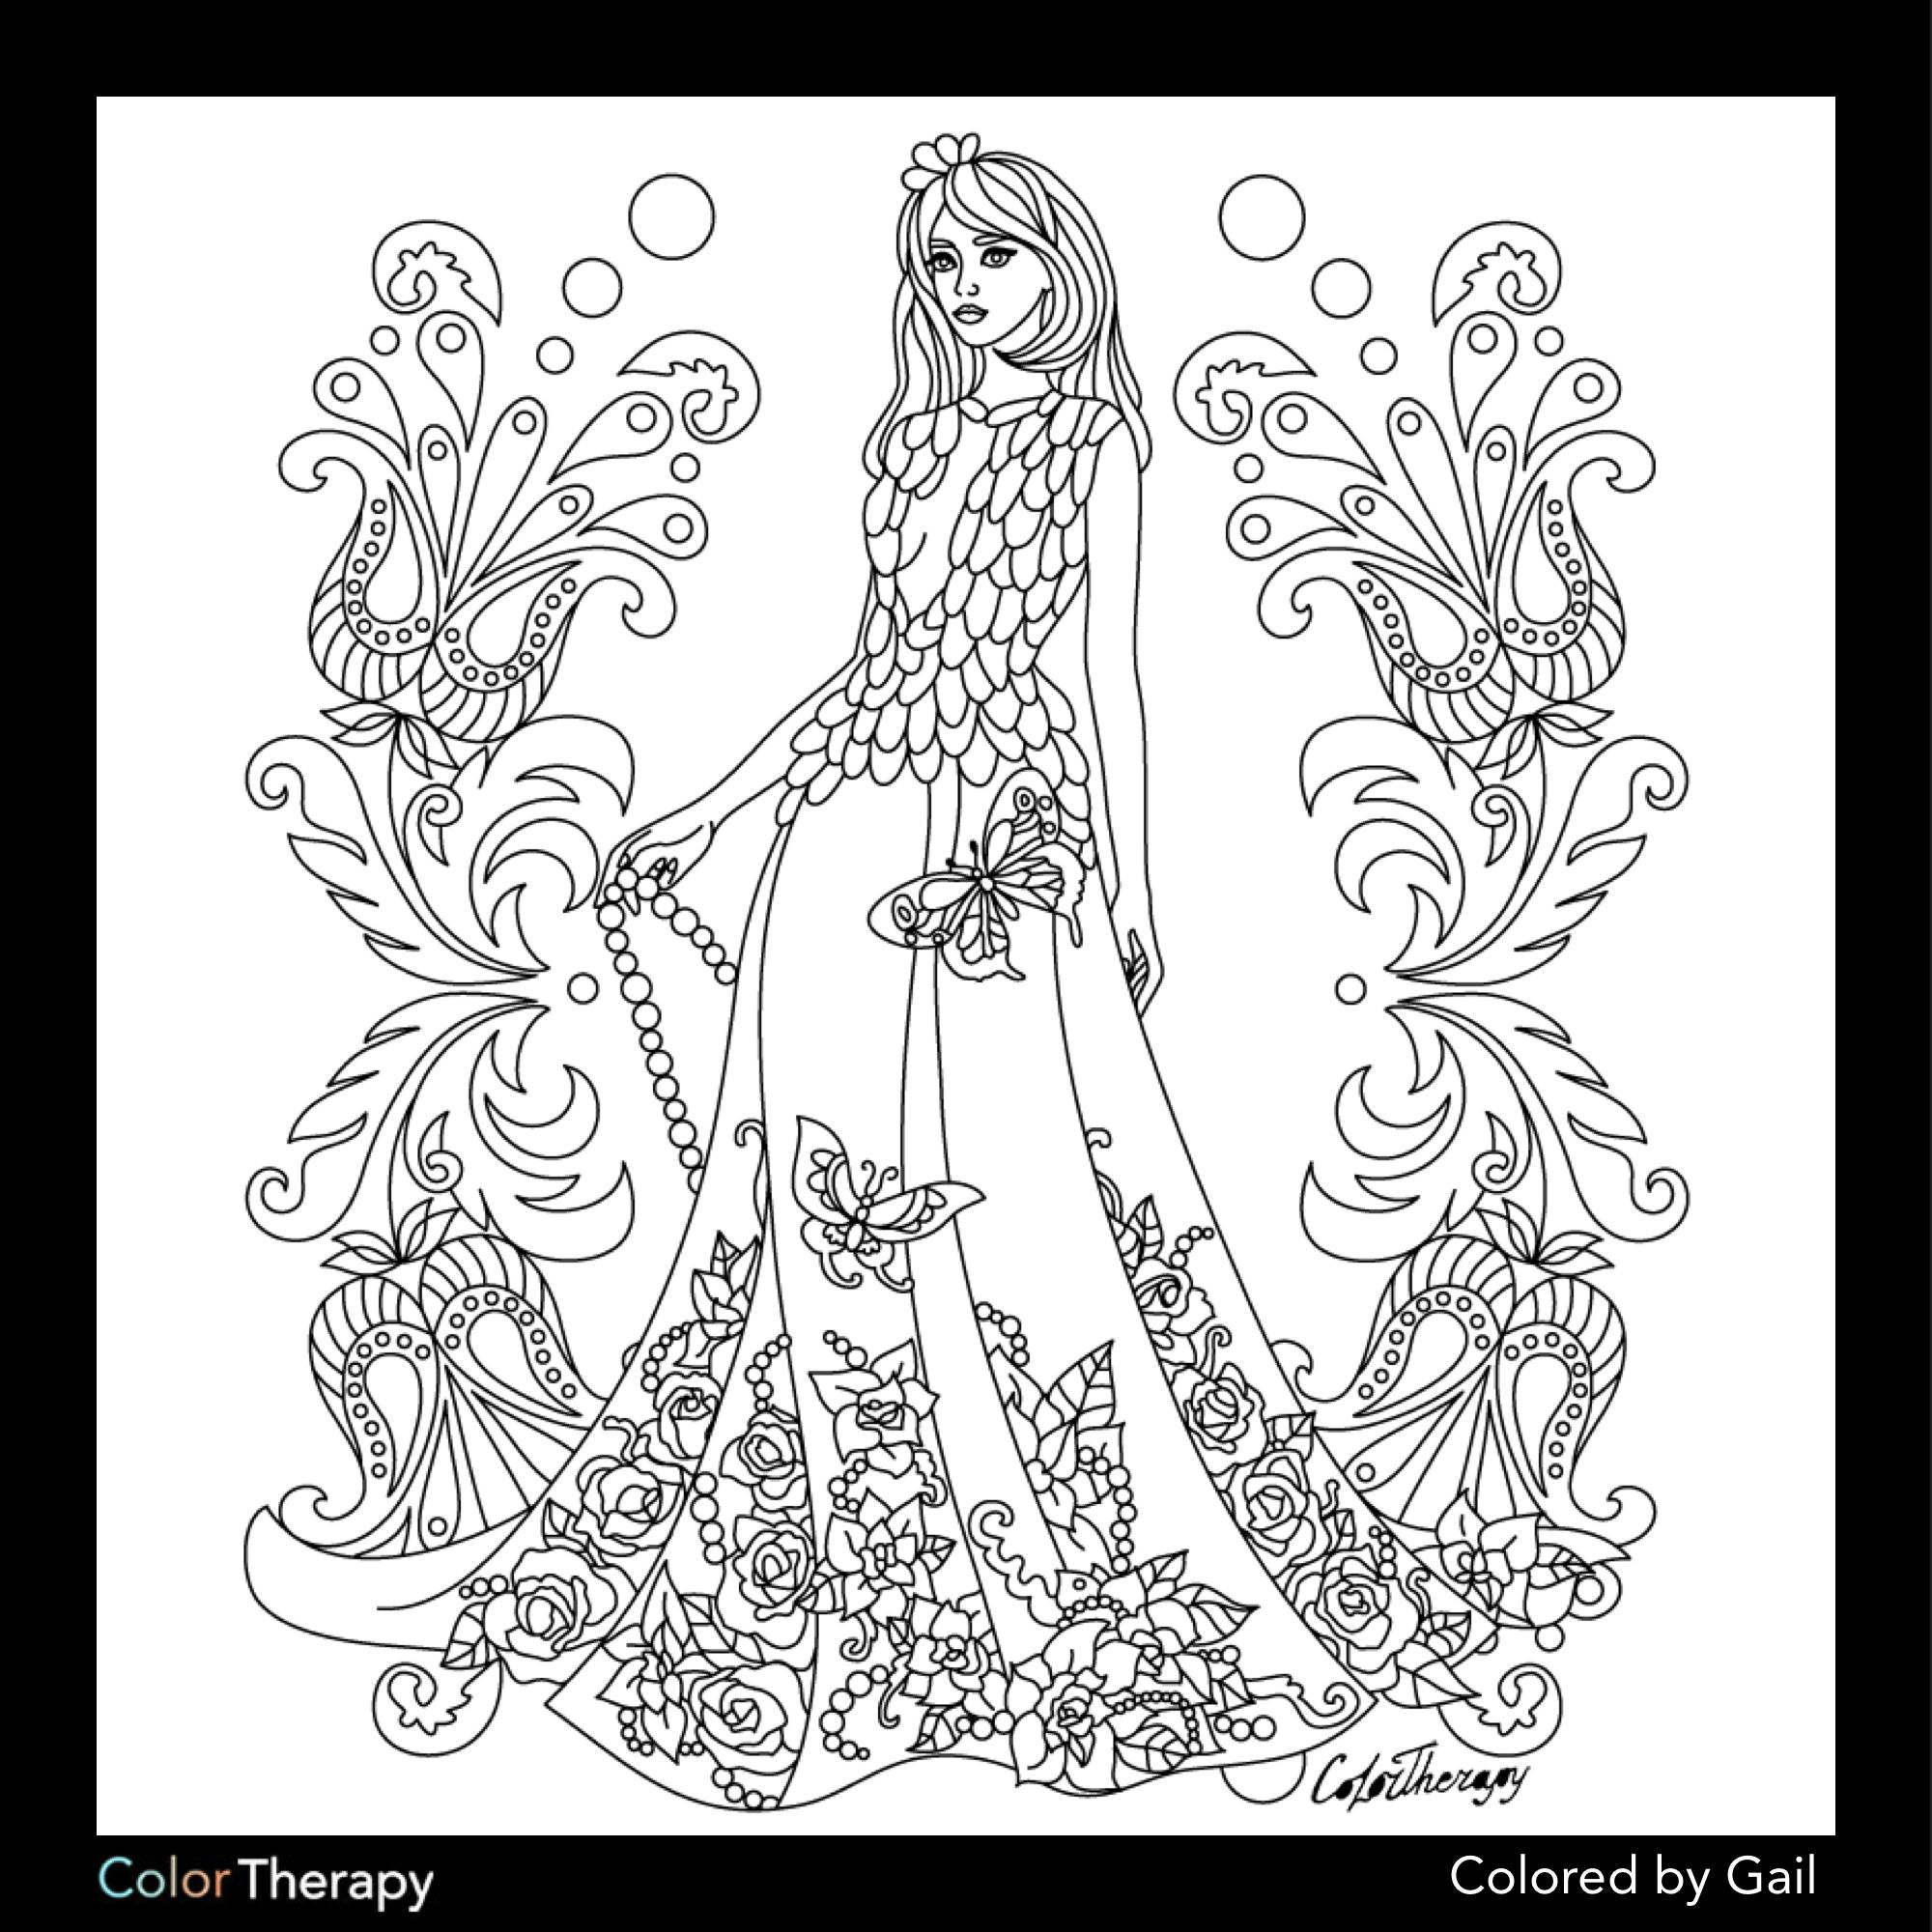 color app coloring pages | I colored this myself using Color Therapy App. It was so ...